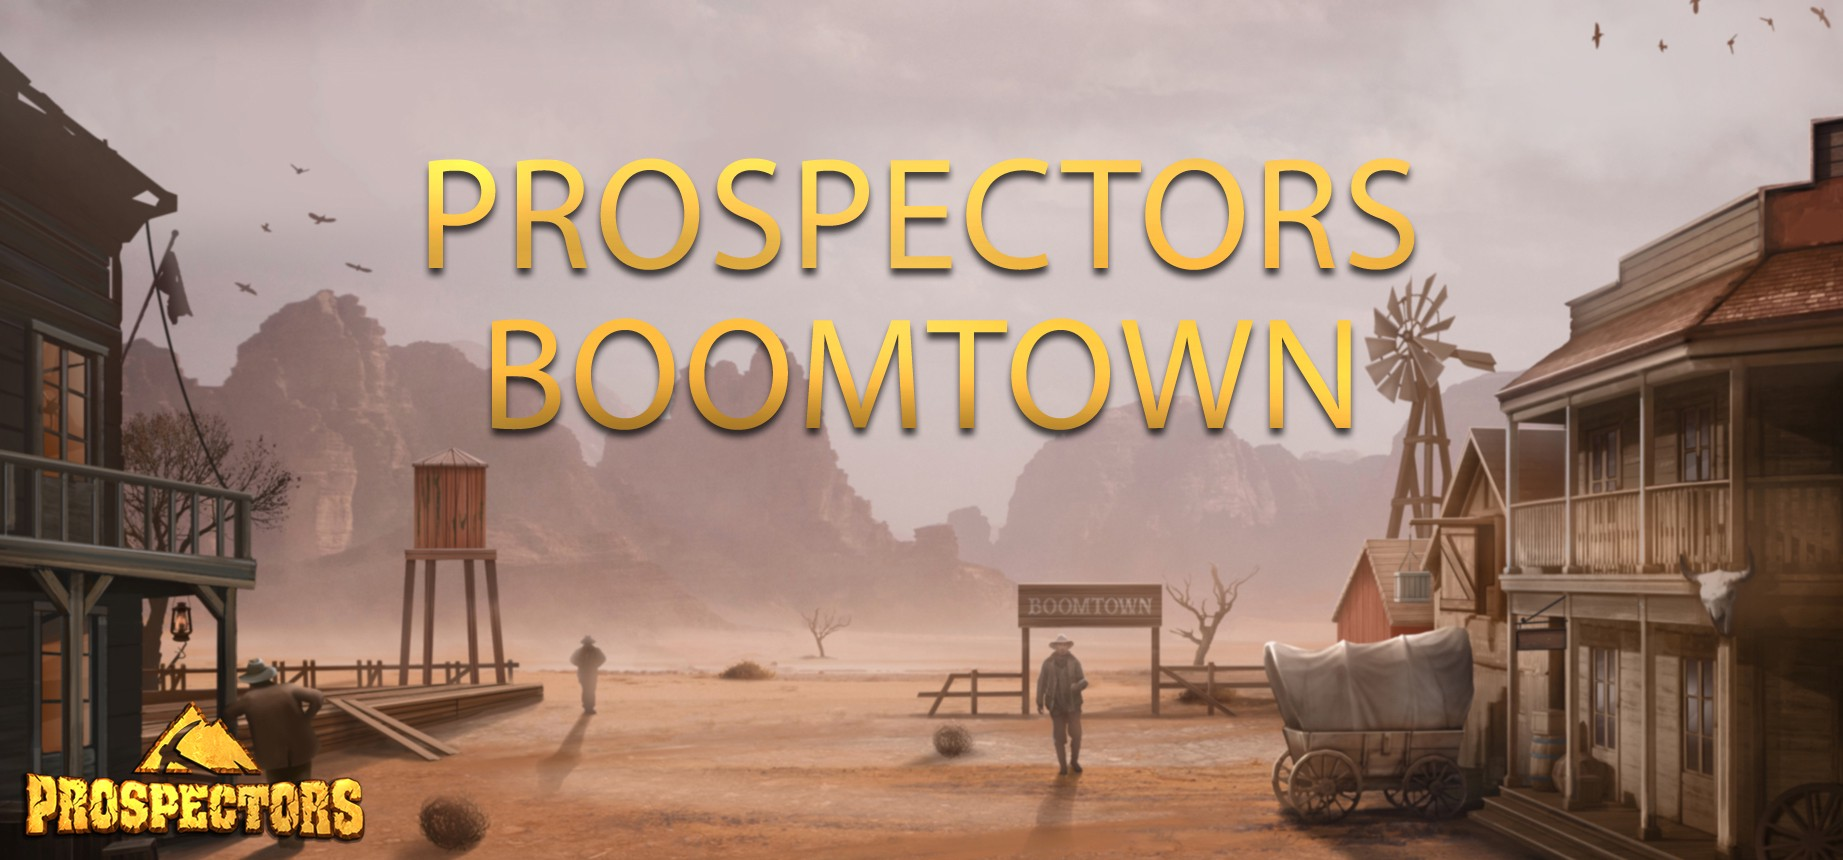 The Very First Boomtown of Prospectors: a gold rush challenge